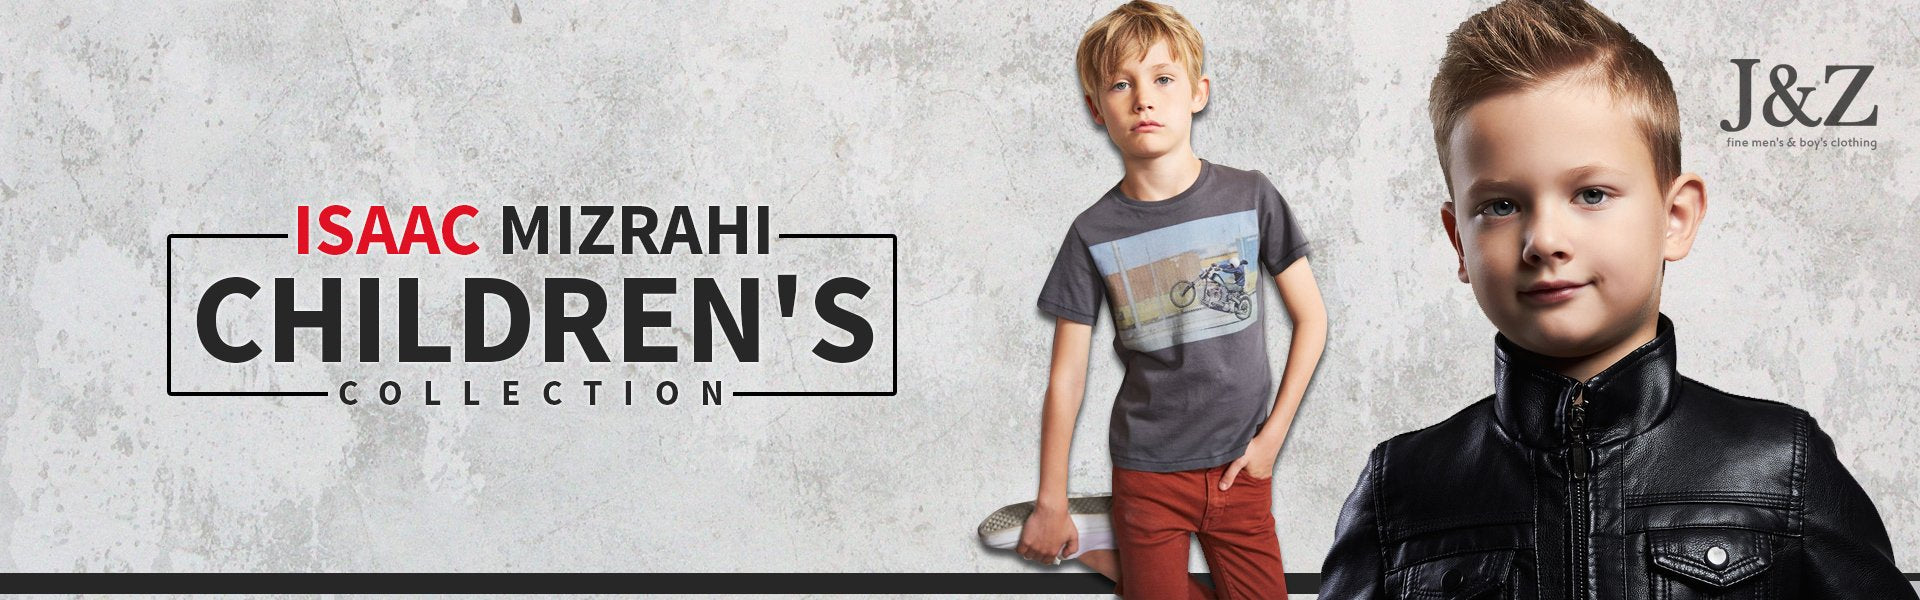 Isaac Mizrahi Children's Collection